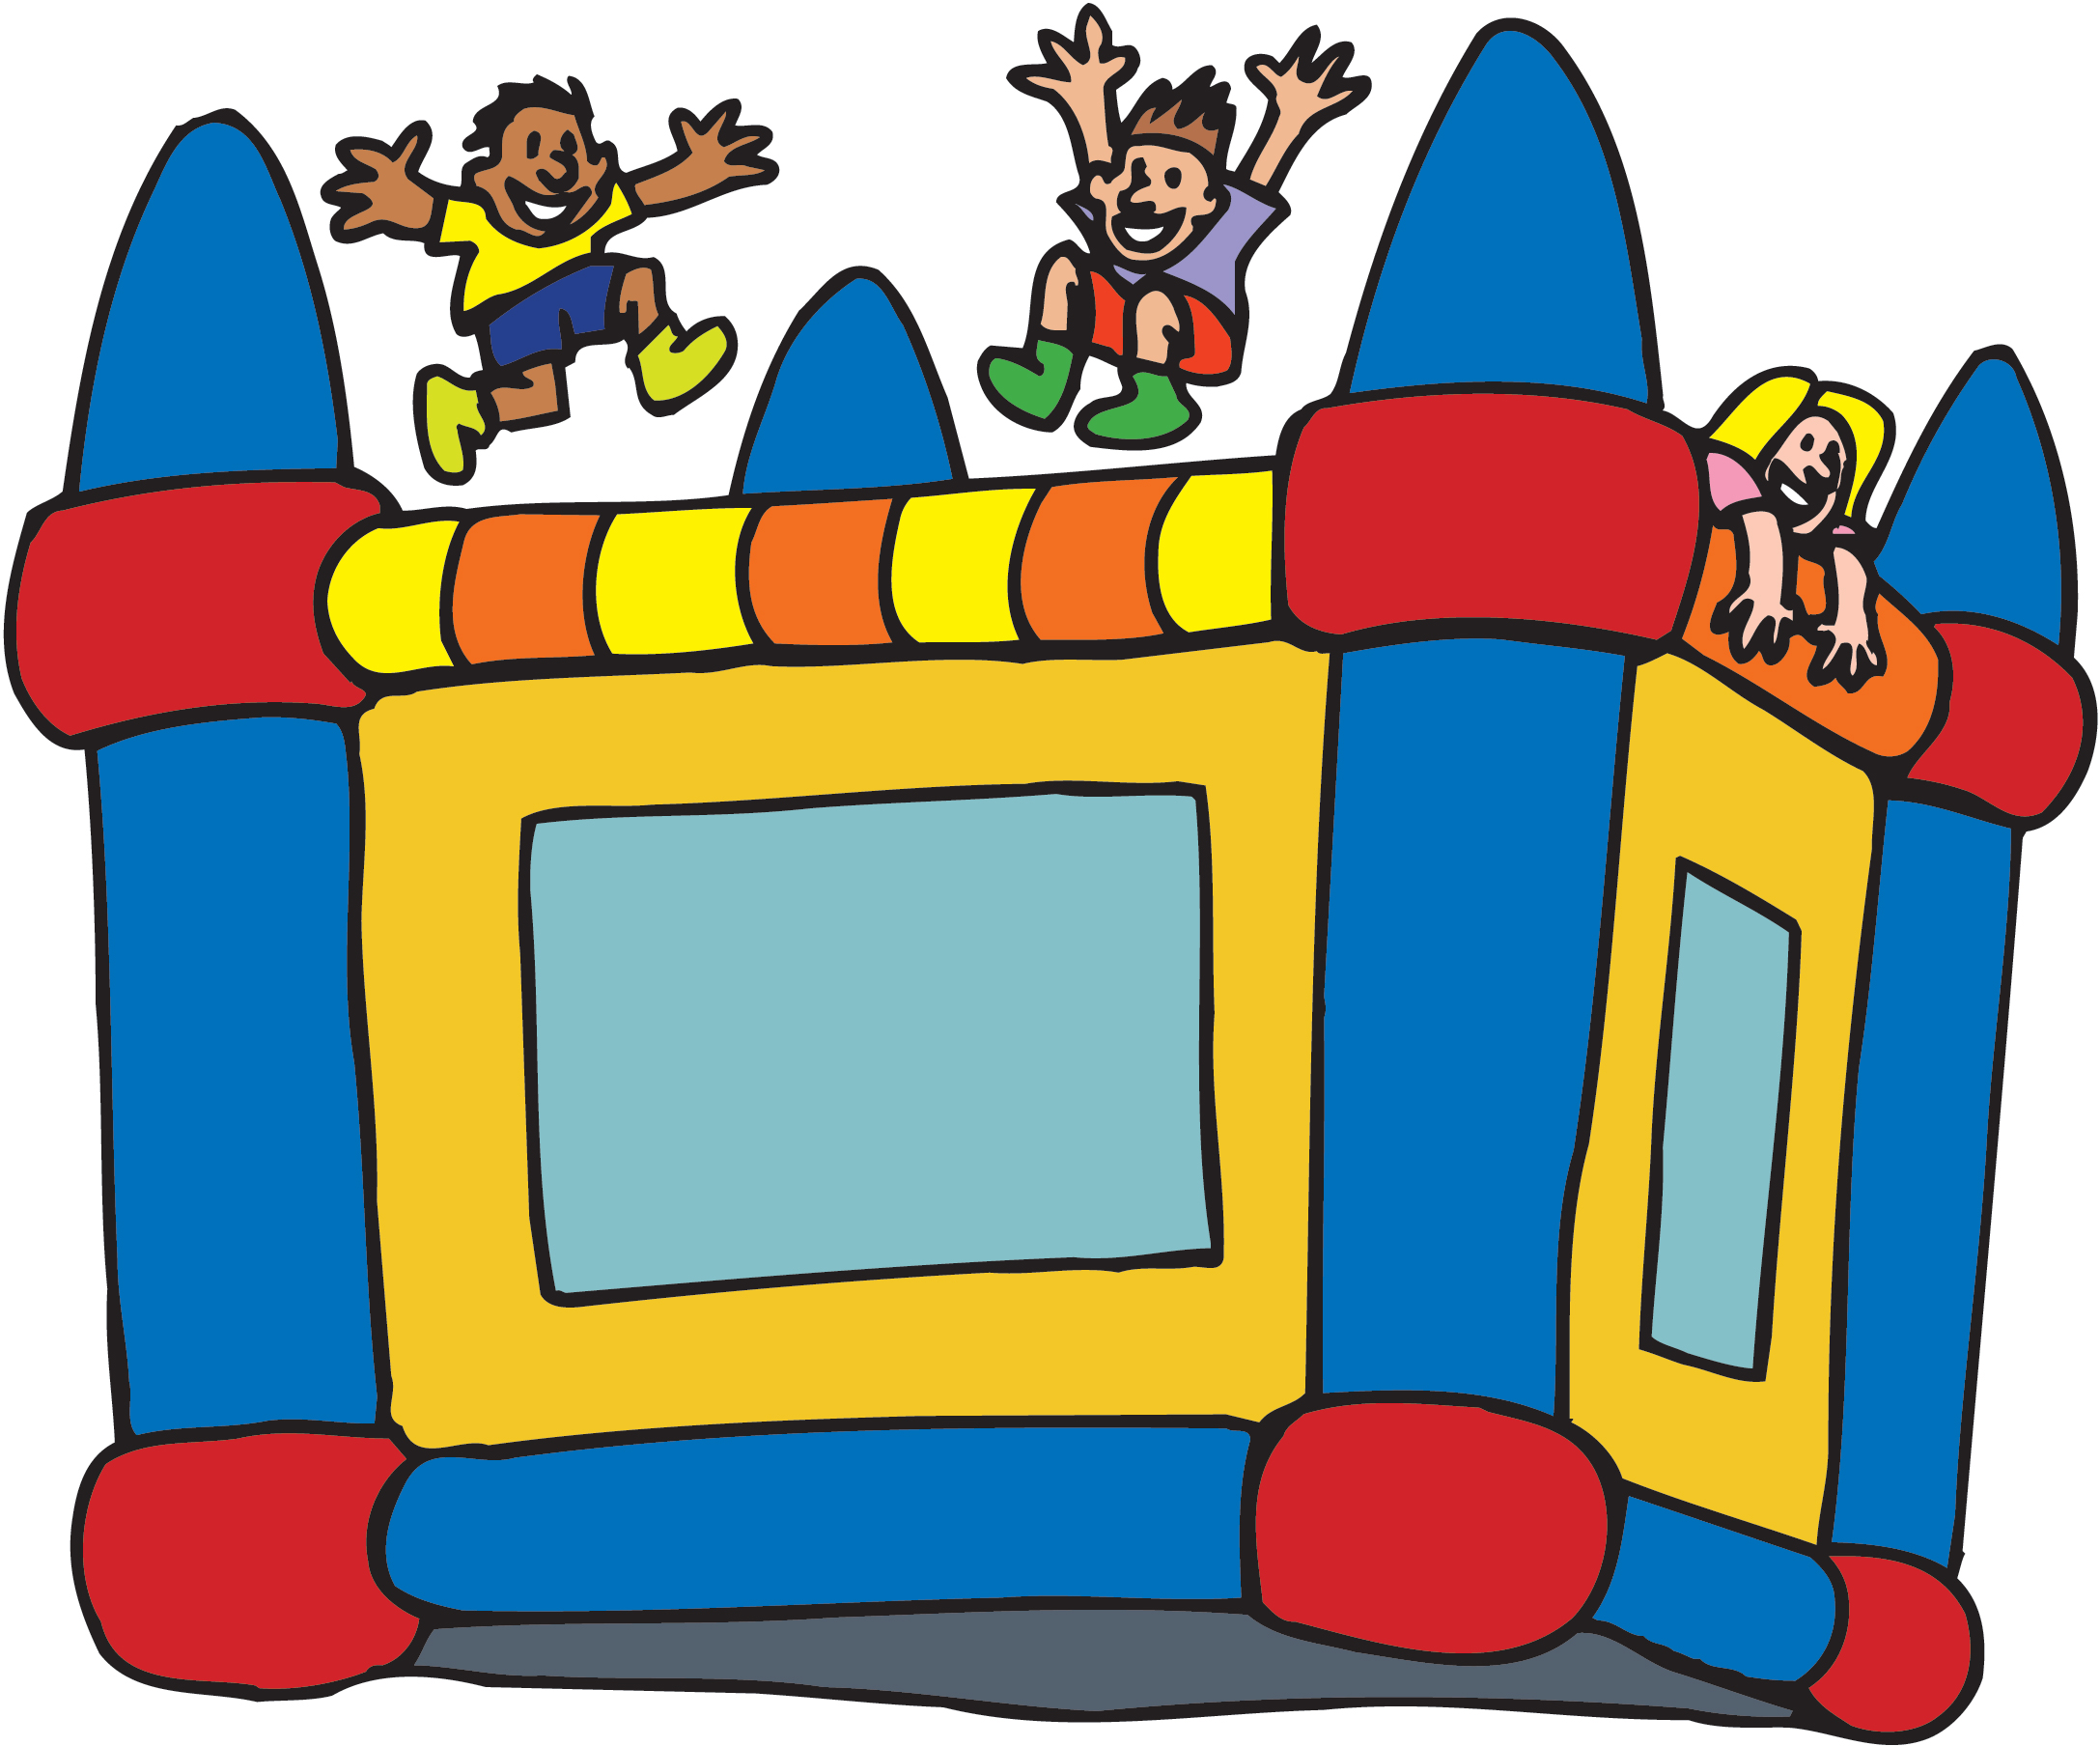 free bounce house clipart - photo #16